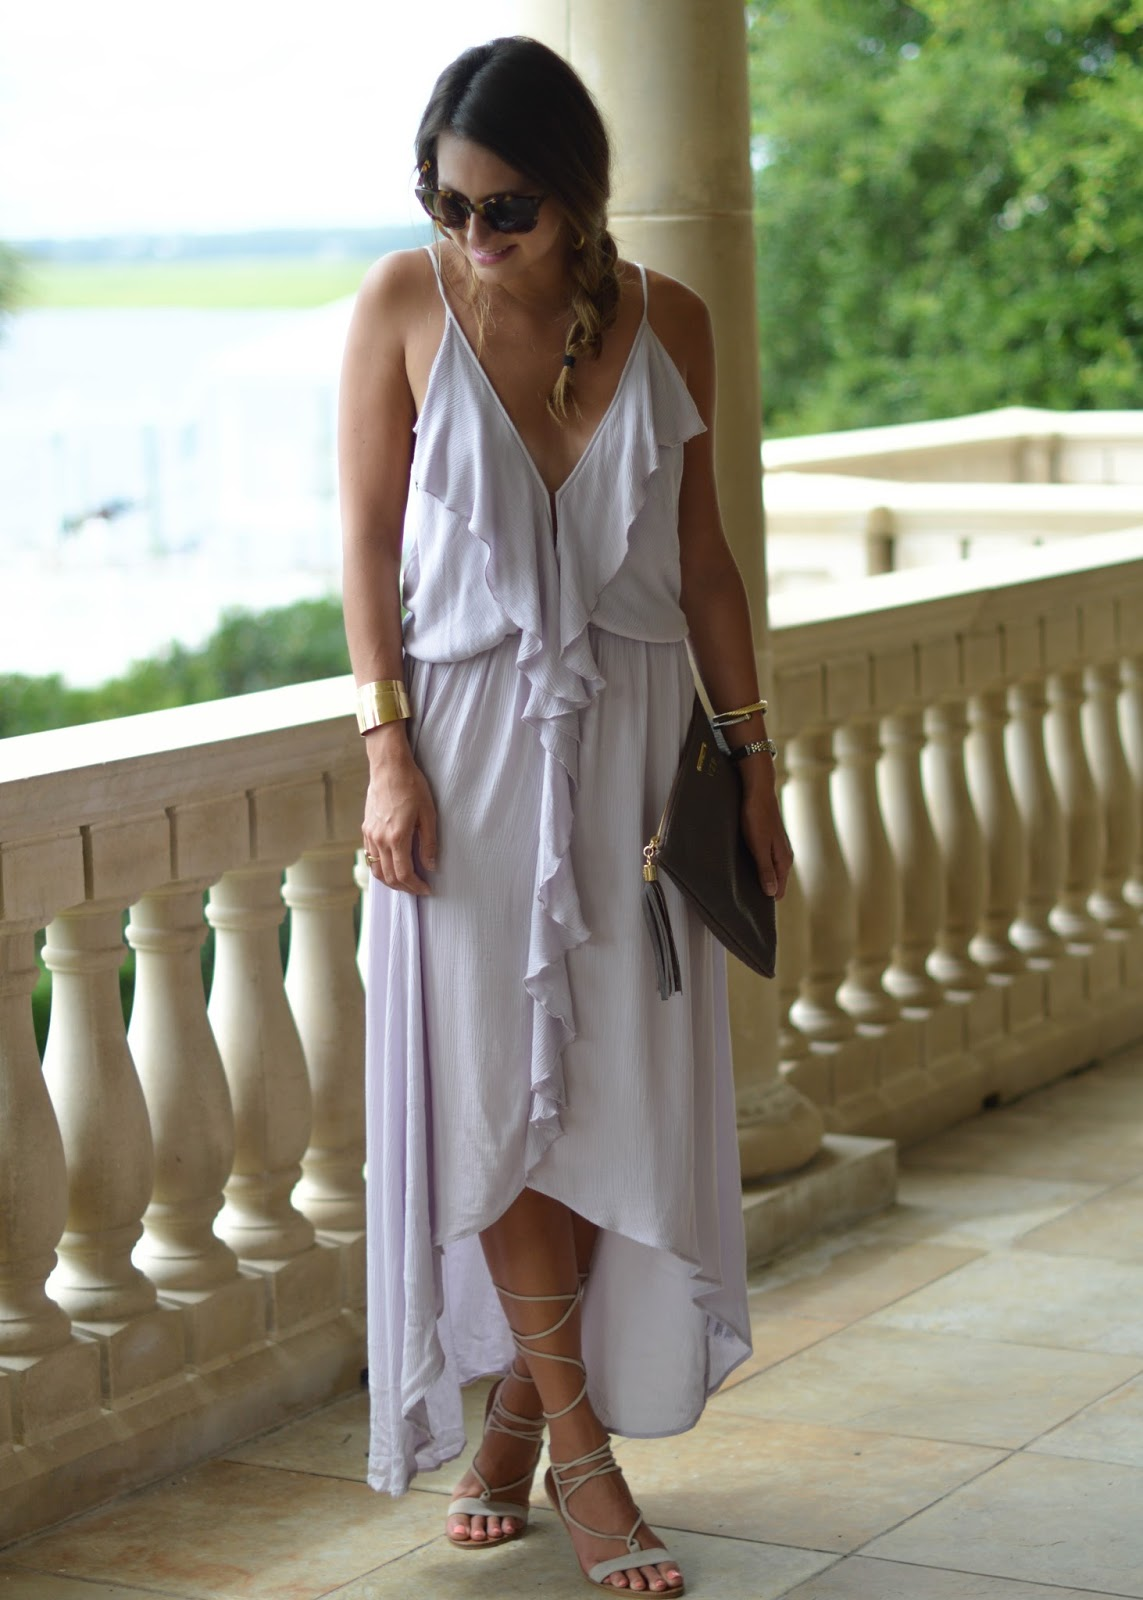 flowy purple dress / Southern Style / lace up sandals